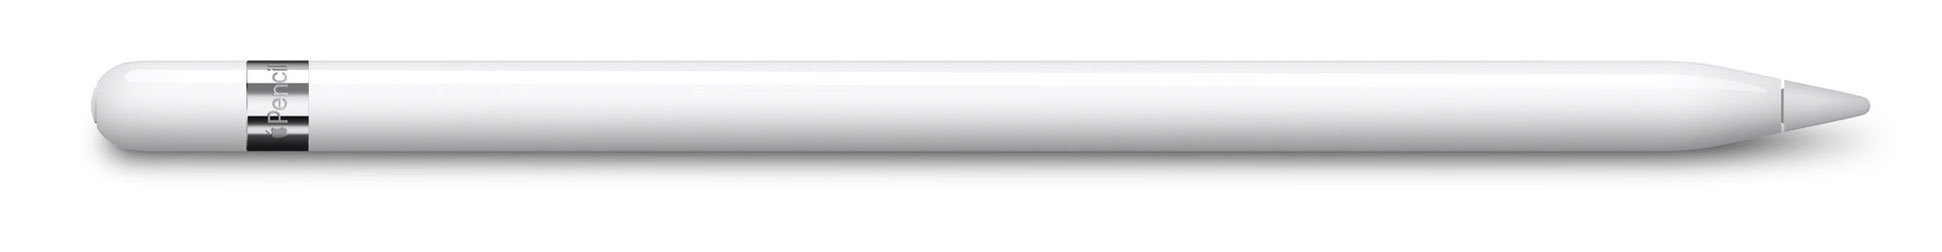 Apple Pencil Leasen